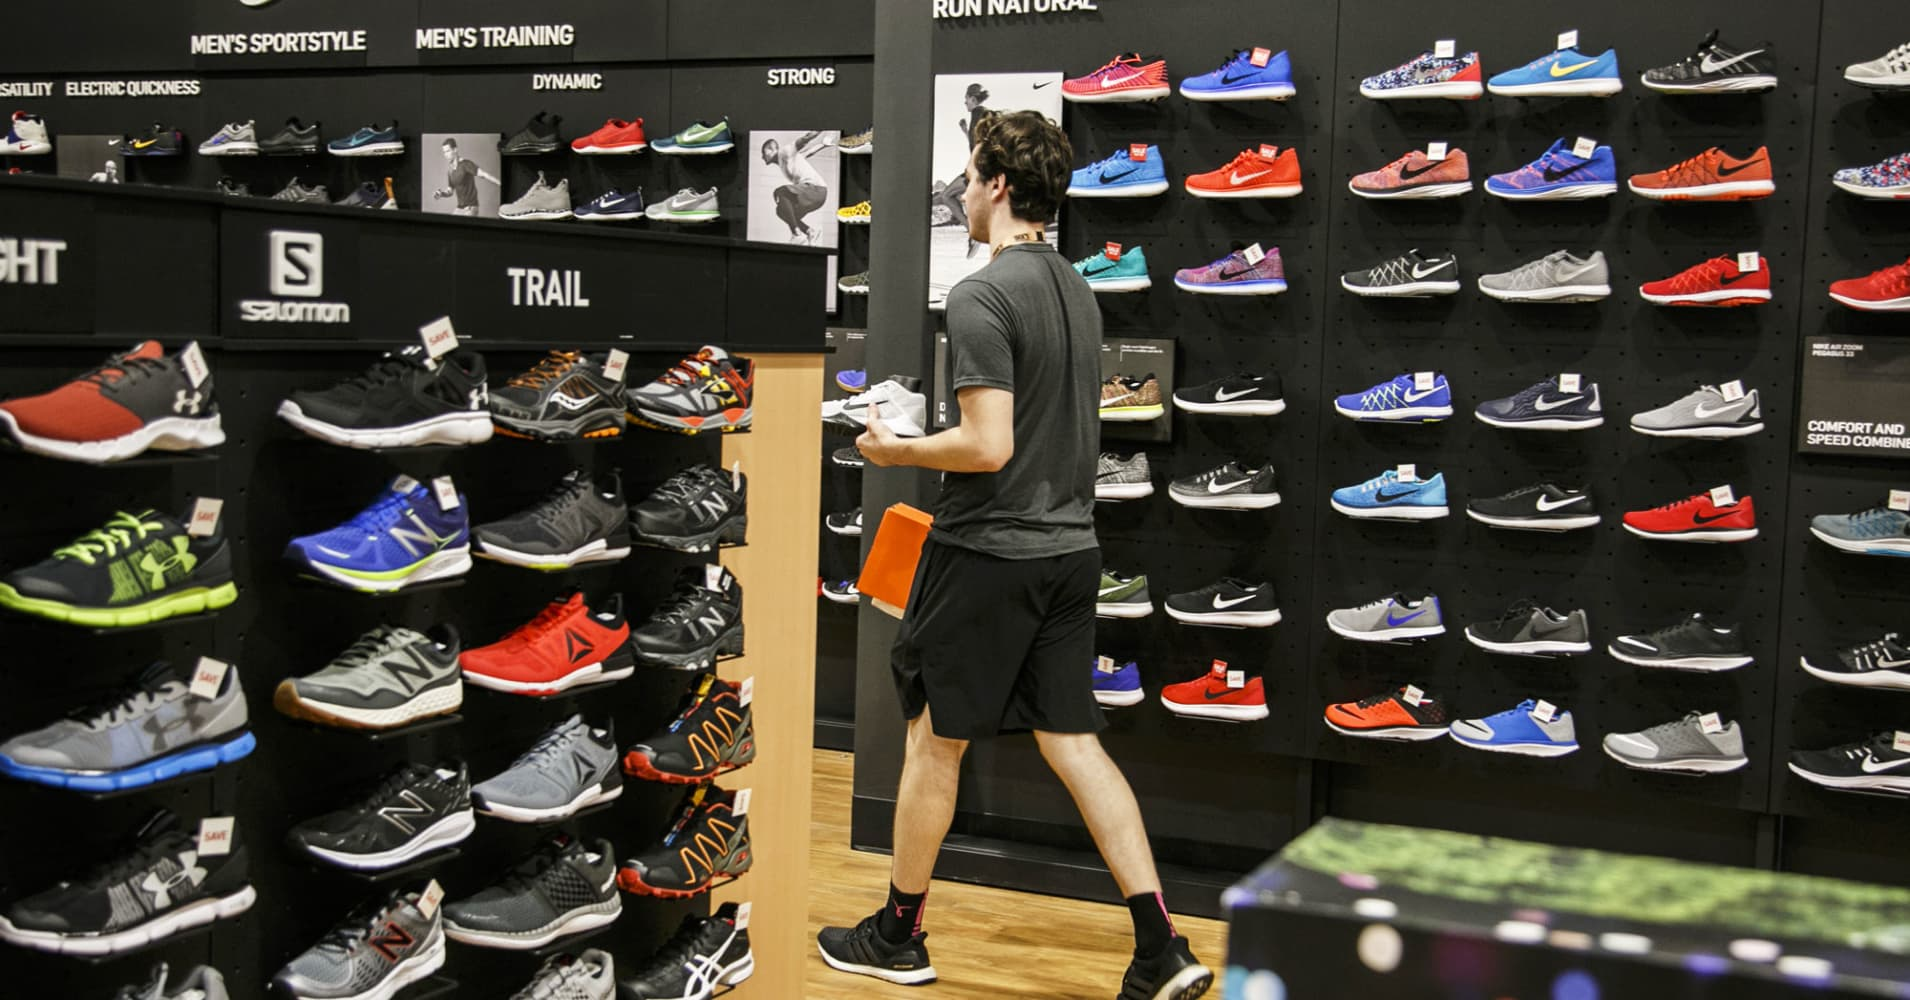 best authentic 9fbda f9ca2 Cowen lowered its rating for Nike shares to market perform from outperform,  citing rising competitive pressure and discounting at retail stores.